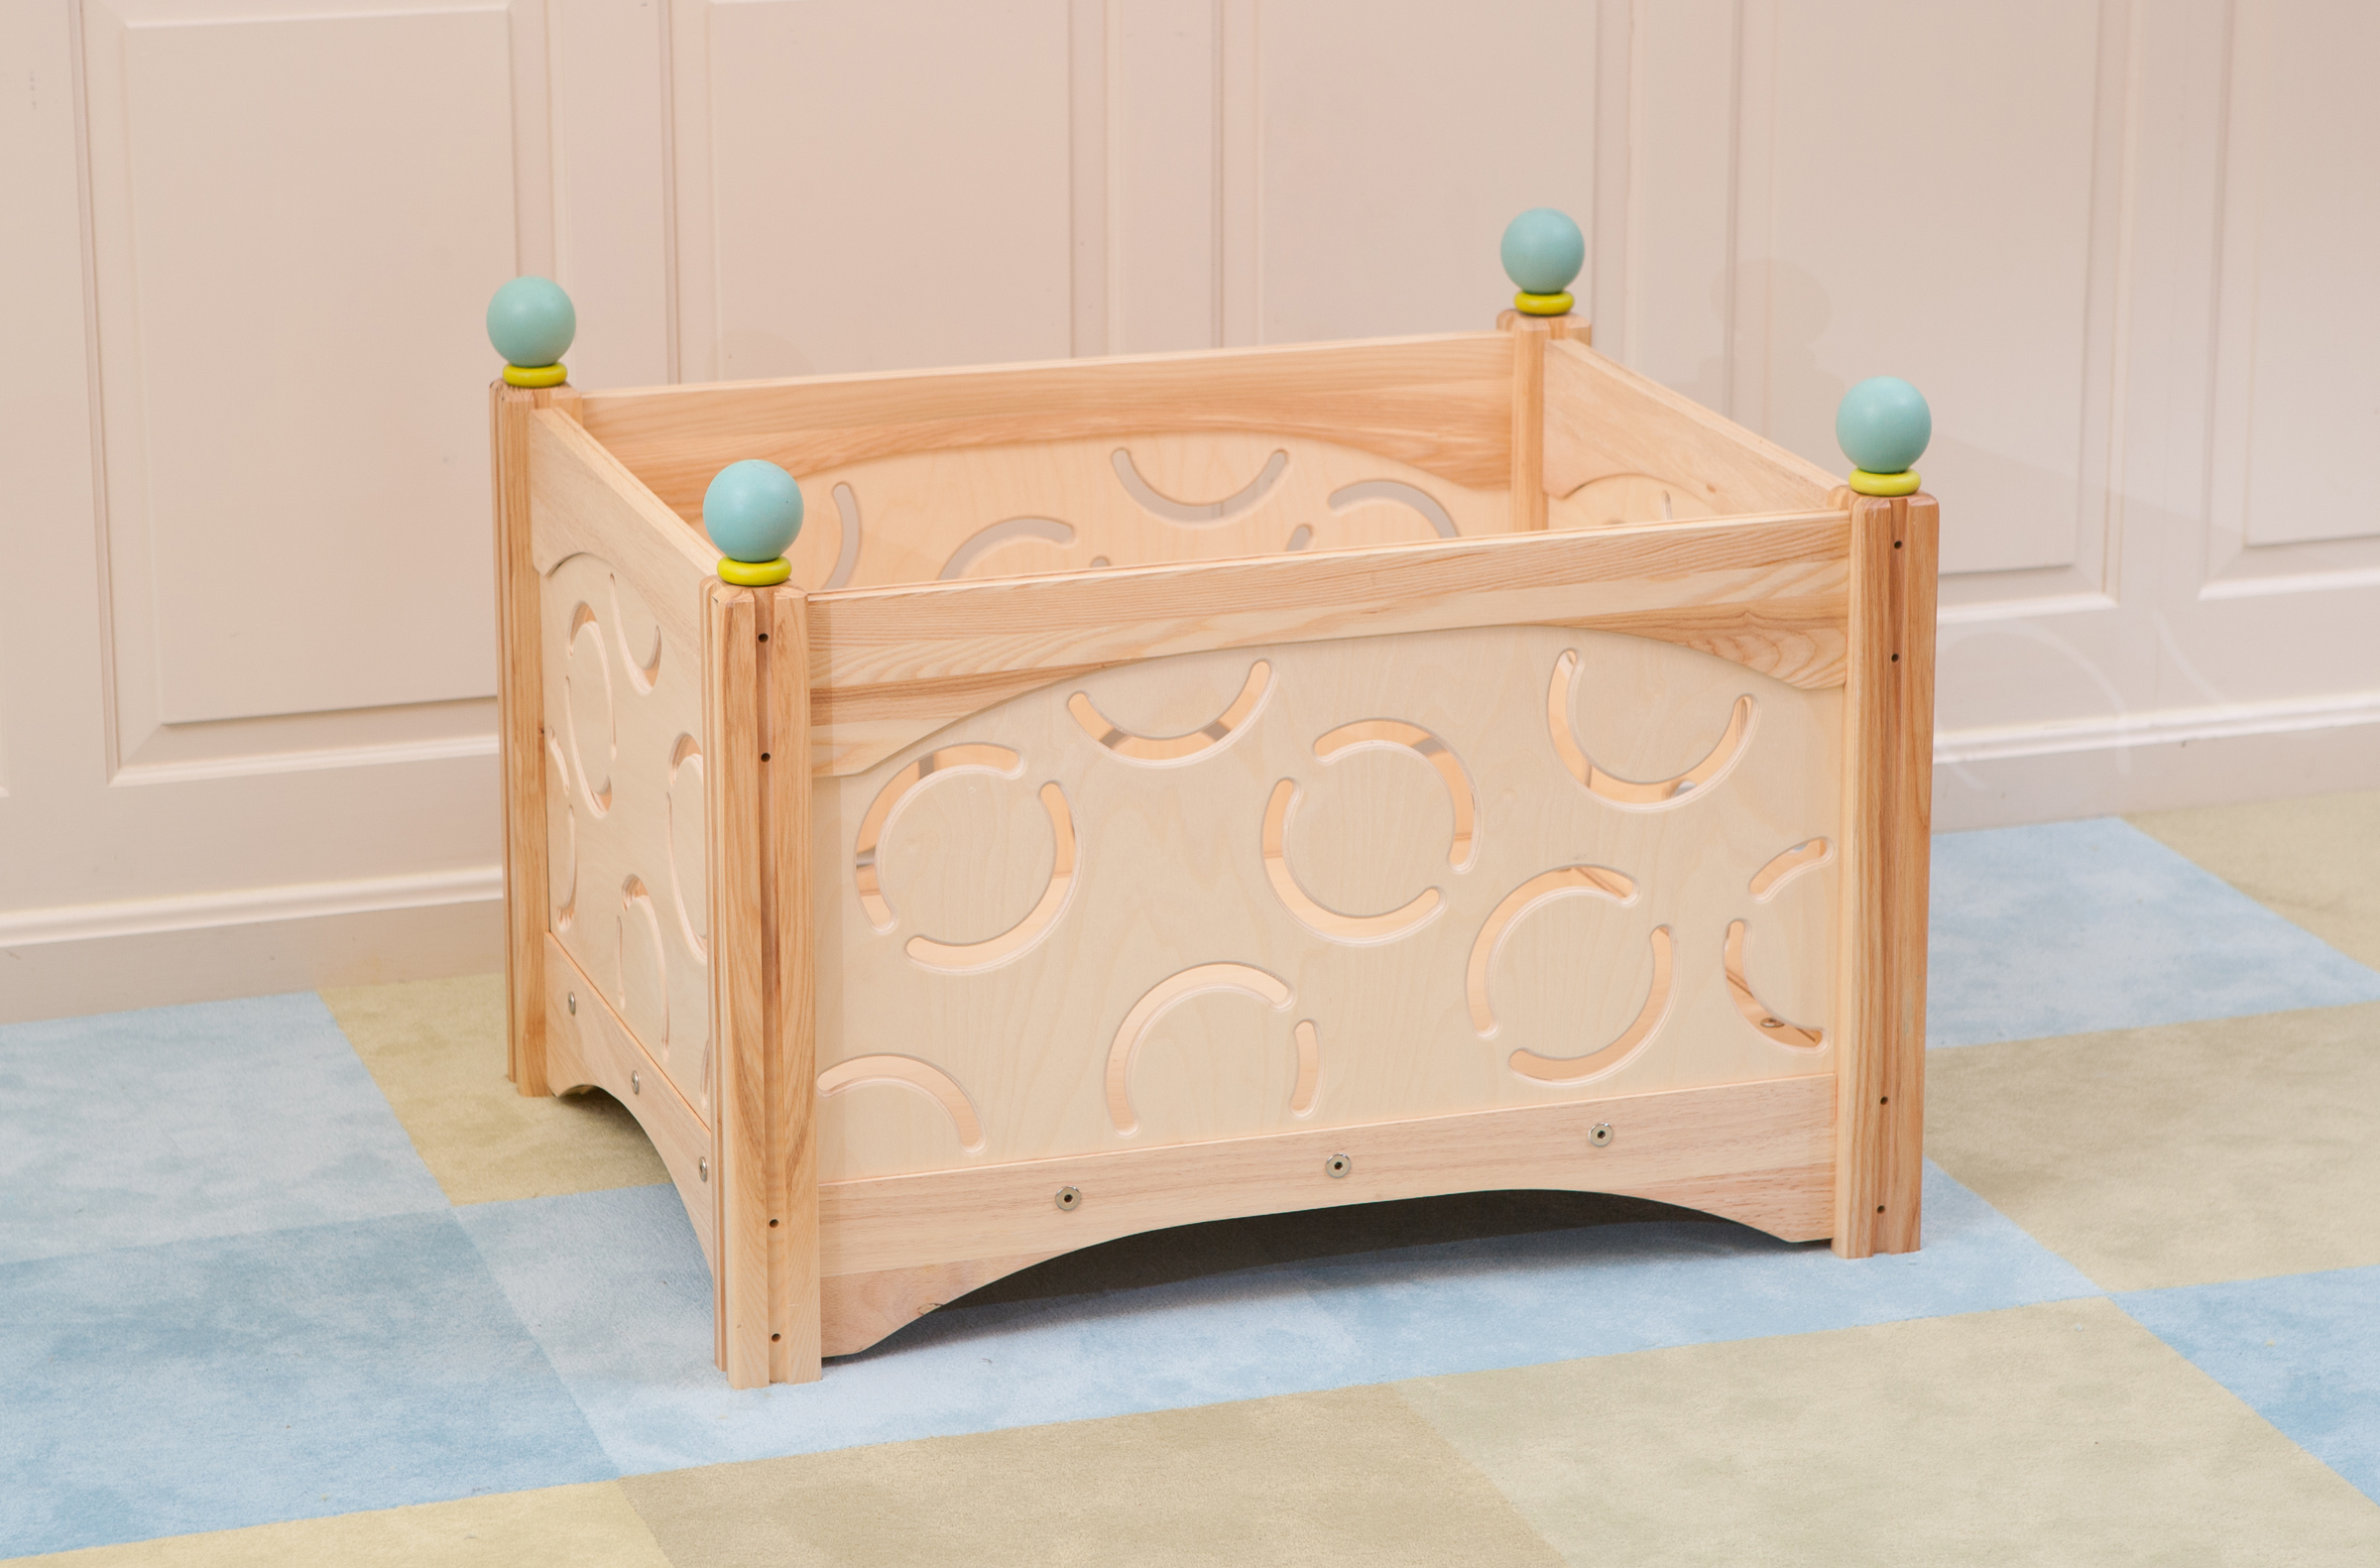 Free Wooden Toy Box Plans | AndyBrauer.com